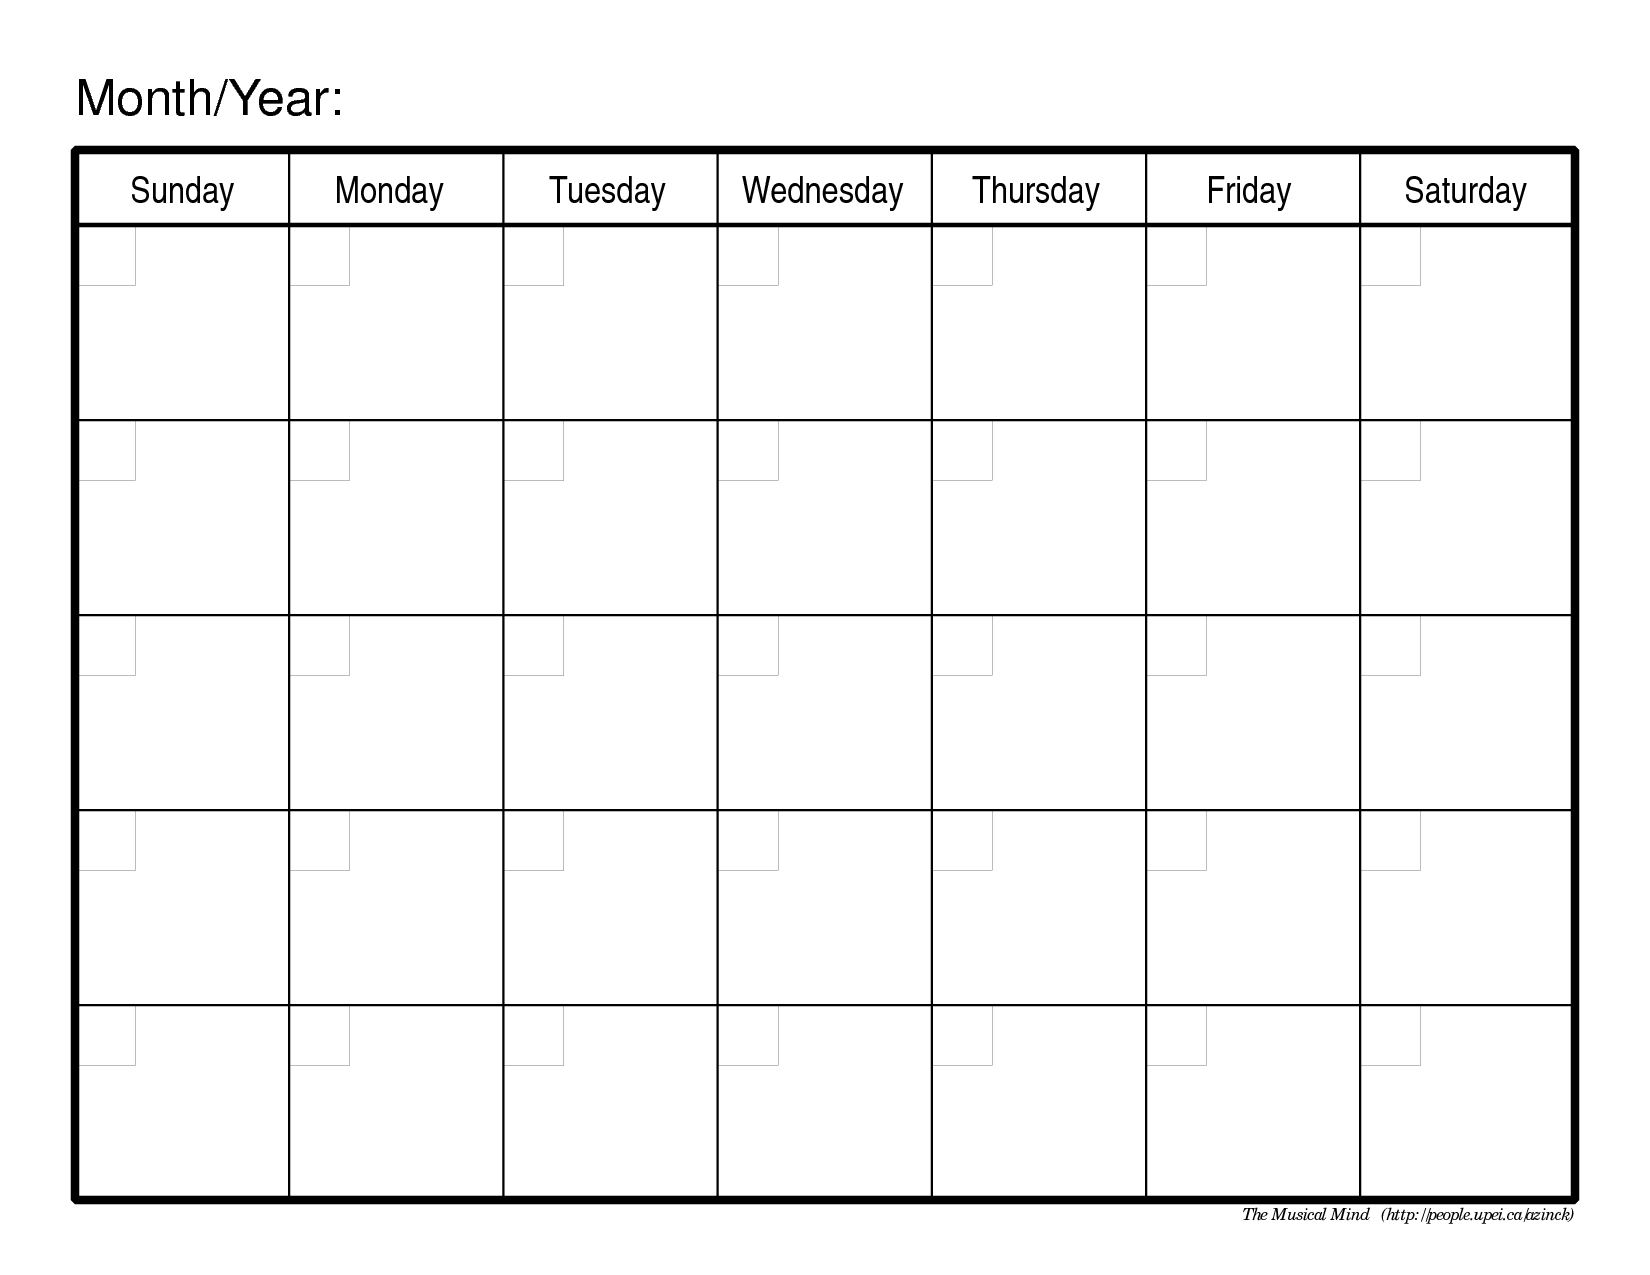 Calendar Templates Printable Free Fieldstation.co | Self Discovery within Fill In Calendar Template Printable